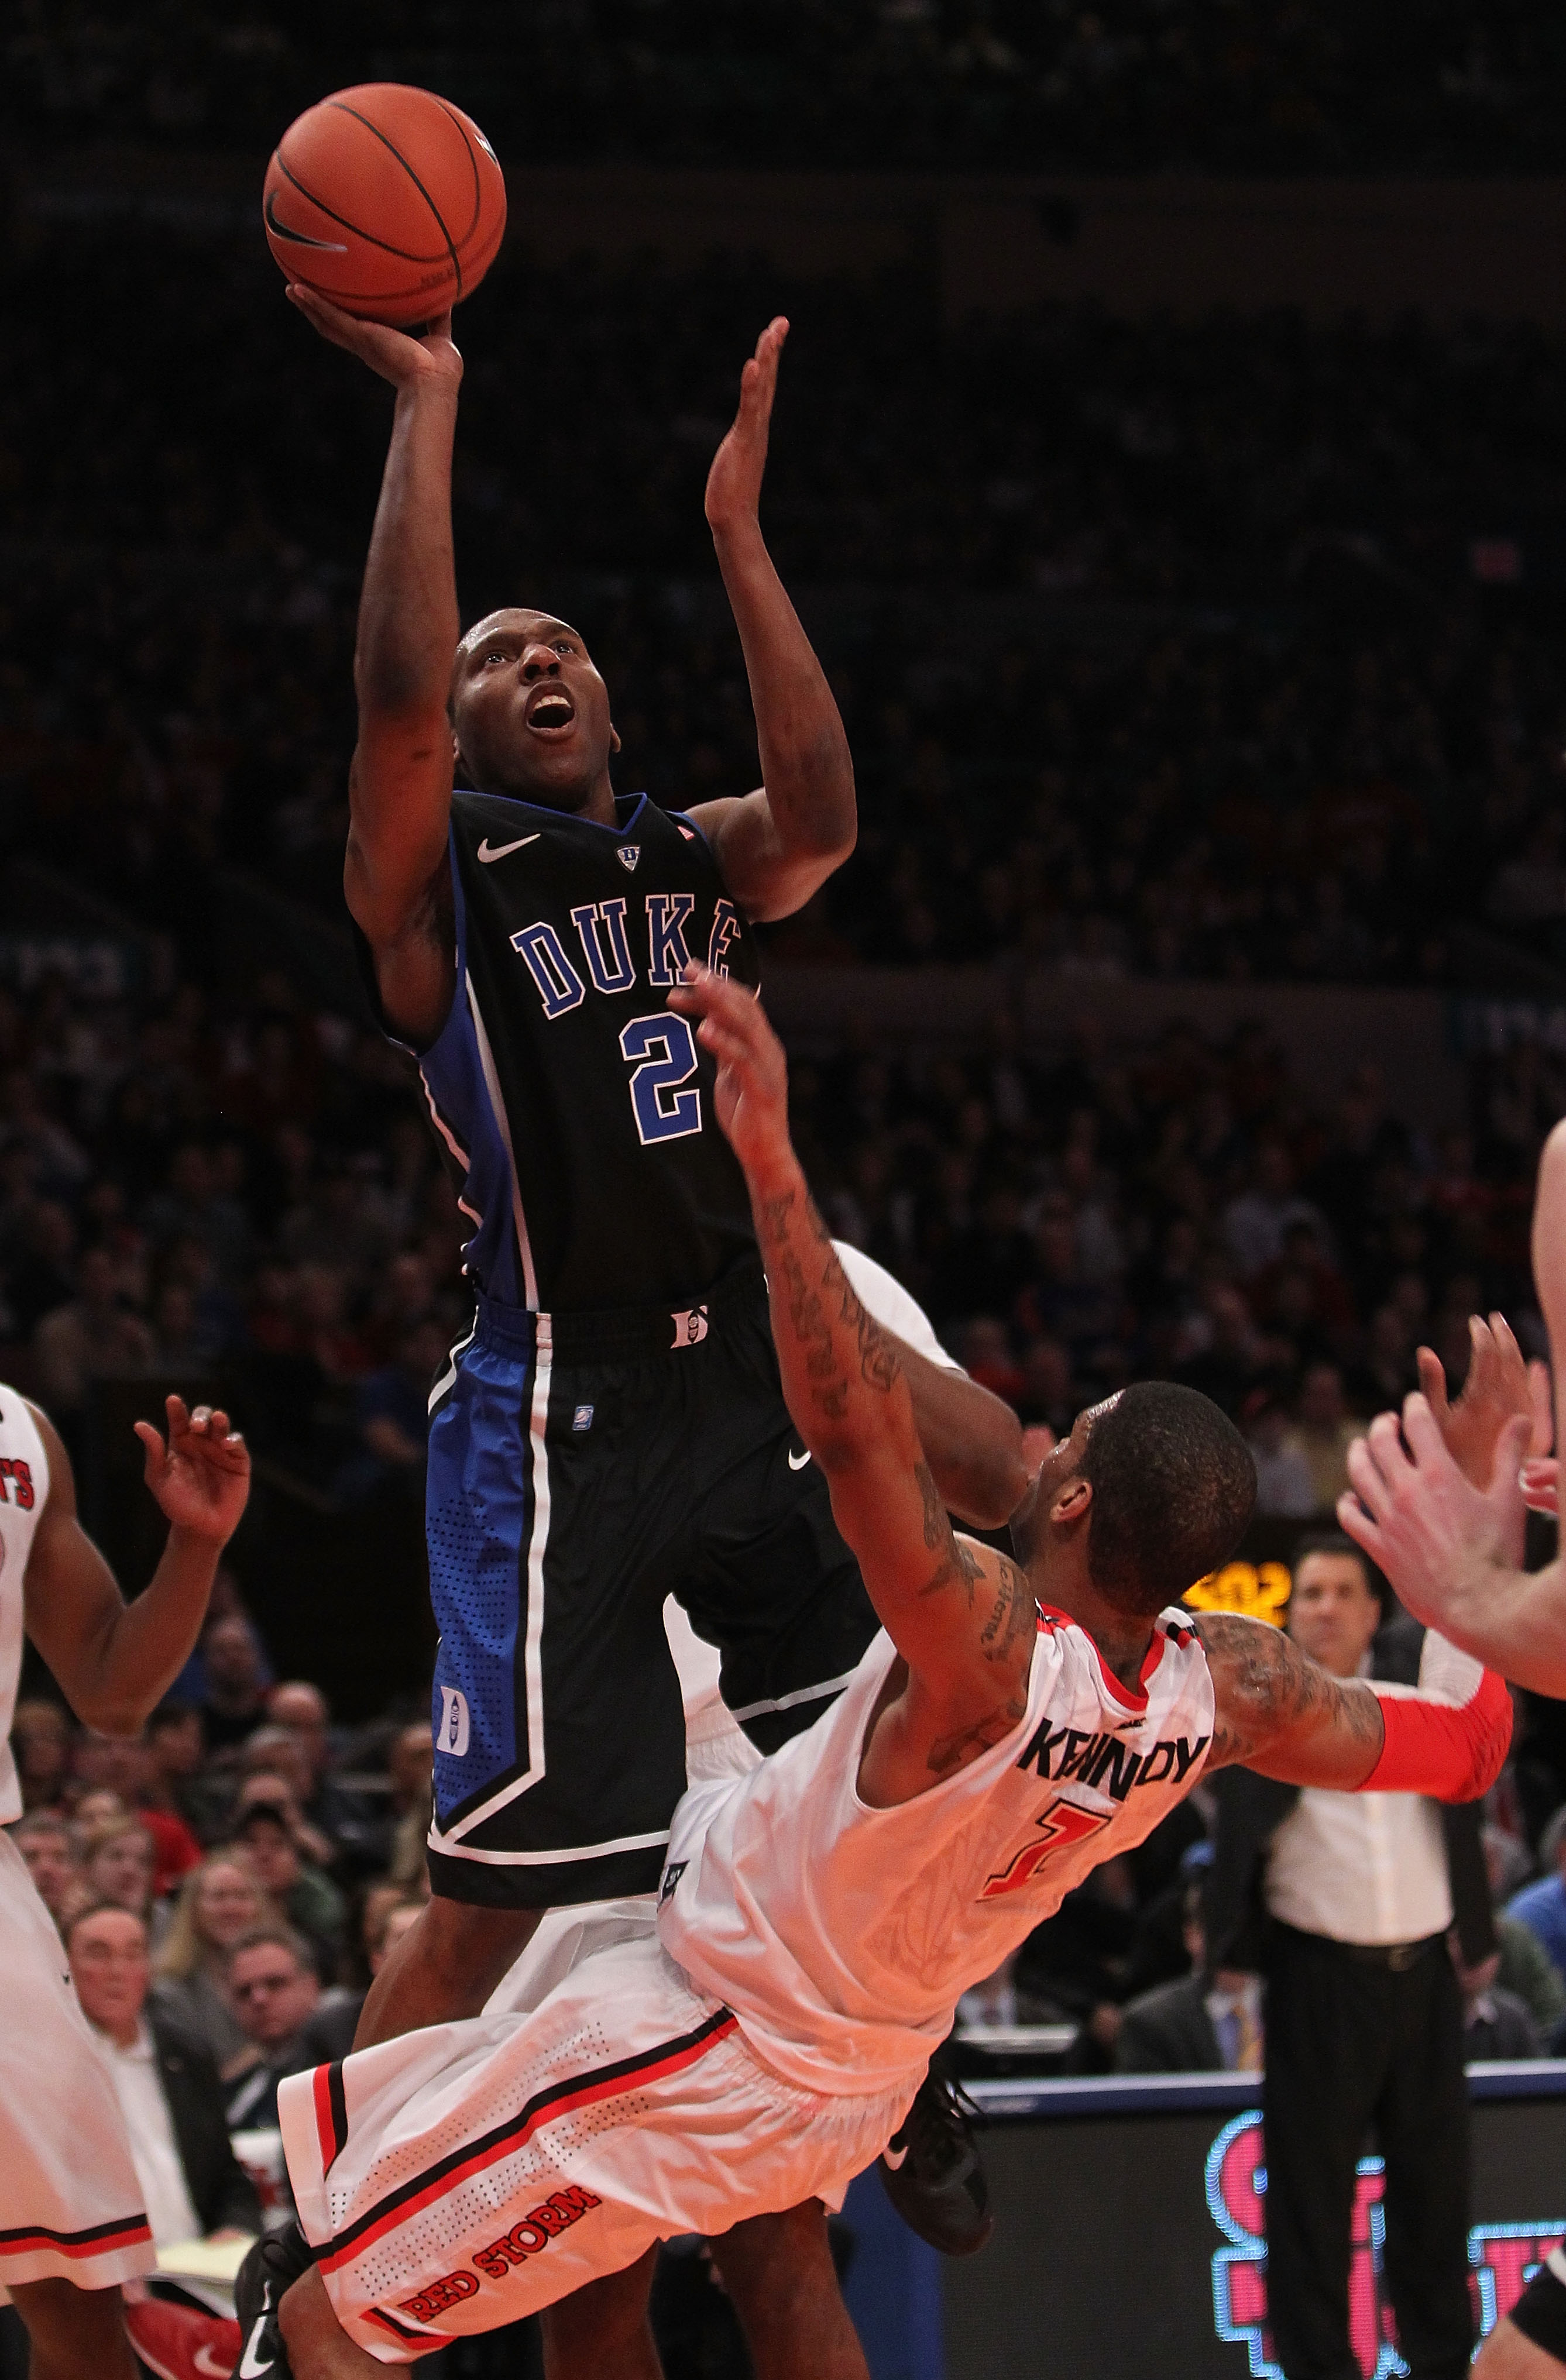 NEW YORK, NY - JANUARY 30:  Nolan Smith #2 of the Duke Blue Devils shoots the ball over D.J. Kennedy #1 of the St. John's Red Storm at Madison Square Garden on January 30, 2011 in New York City.  (Photo by Nick Laham/Getty Images)